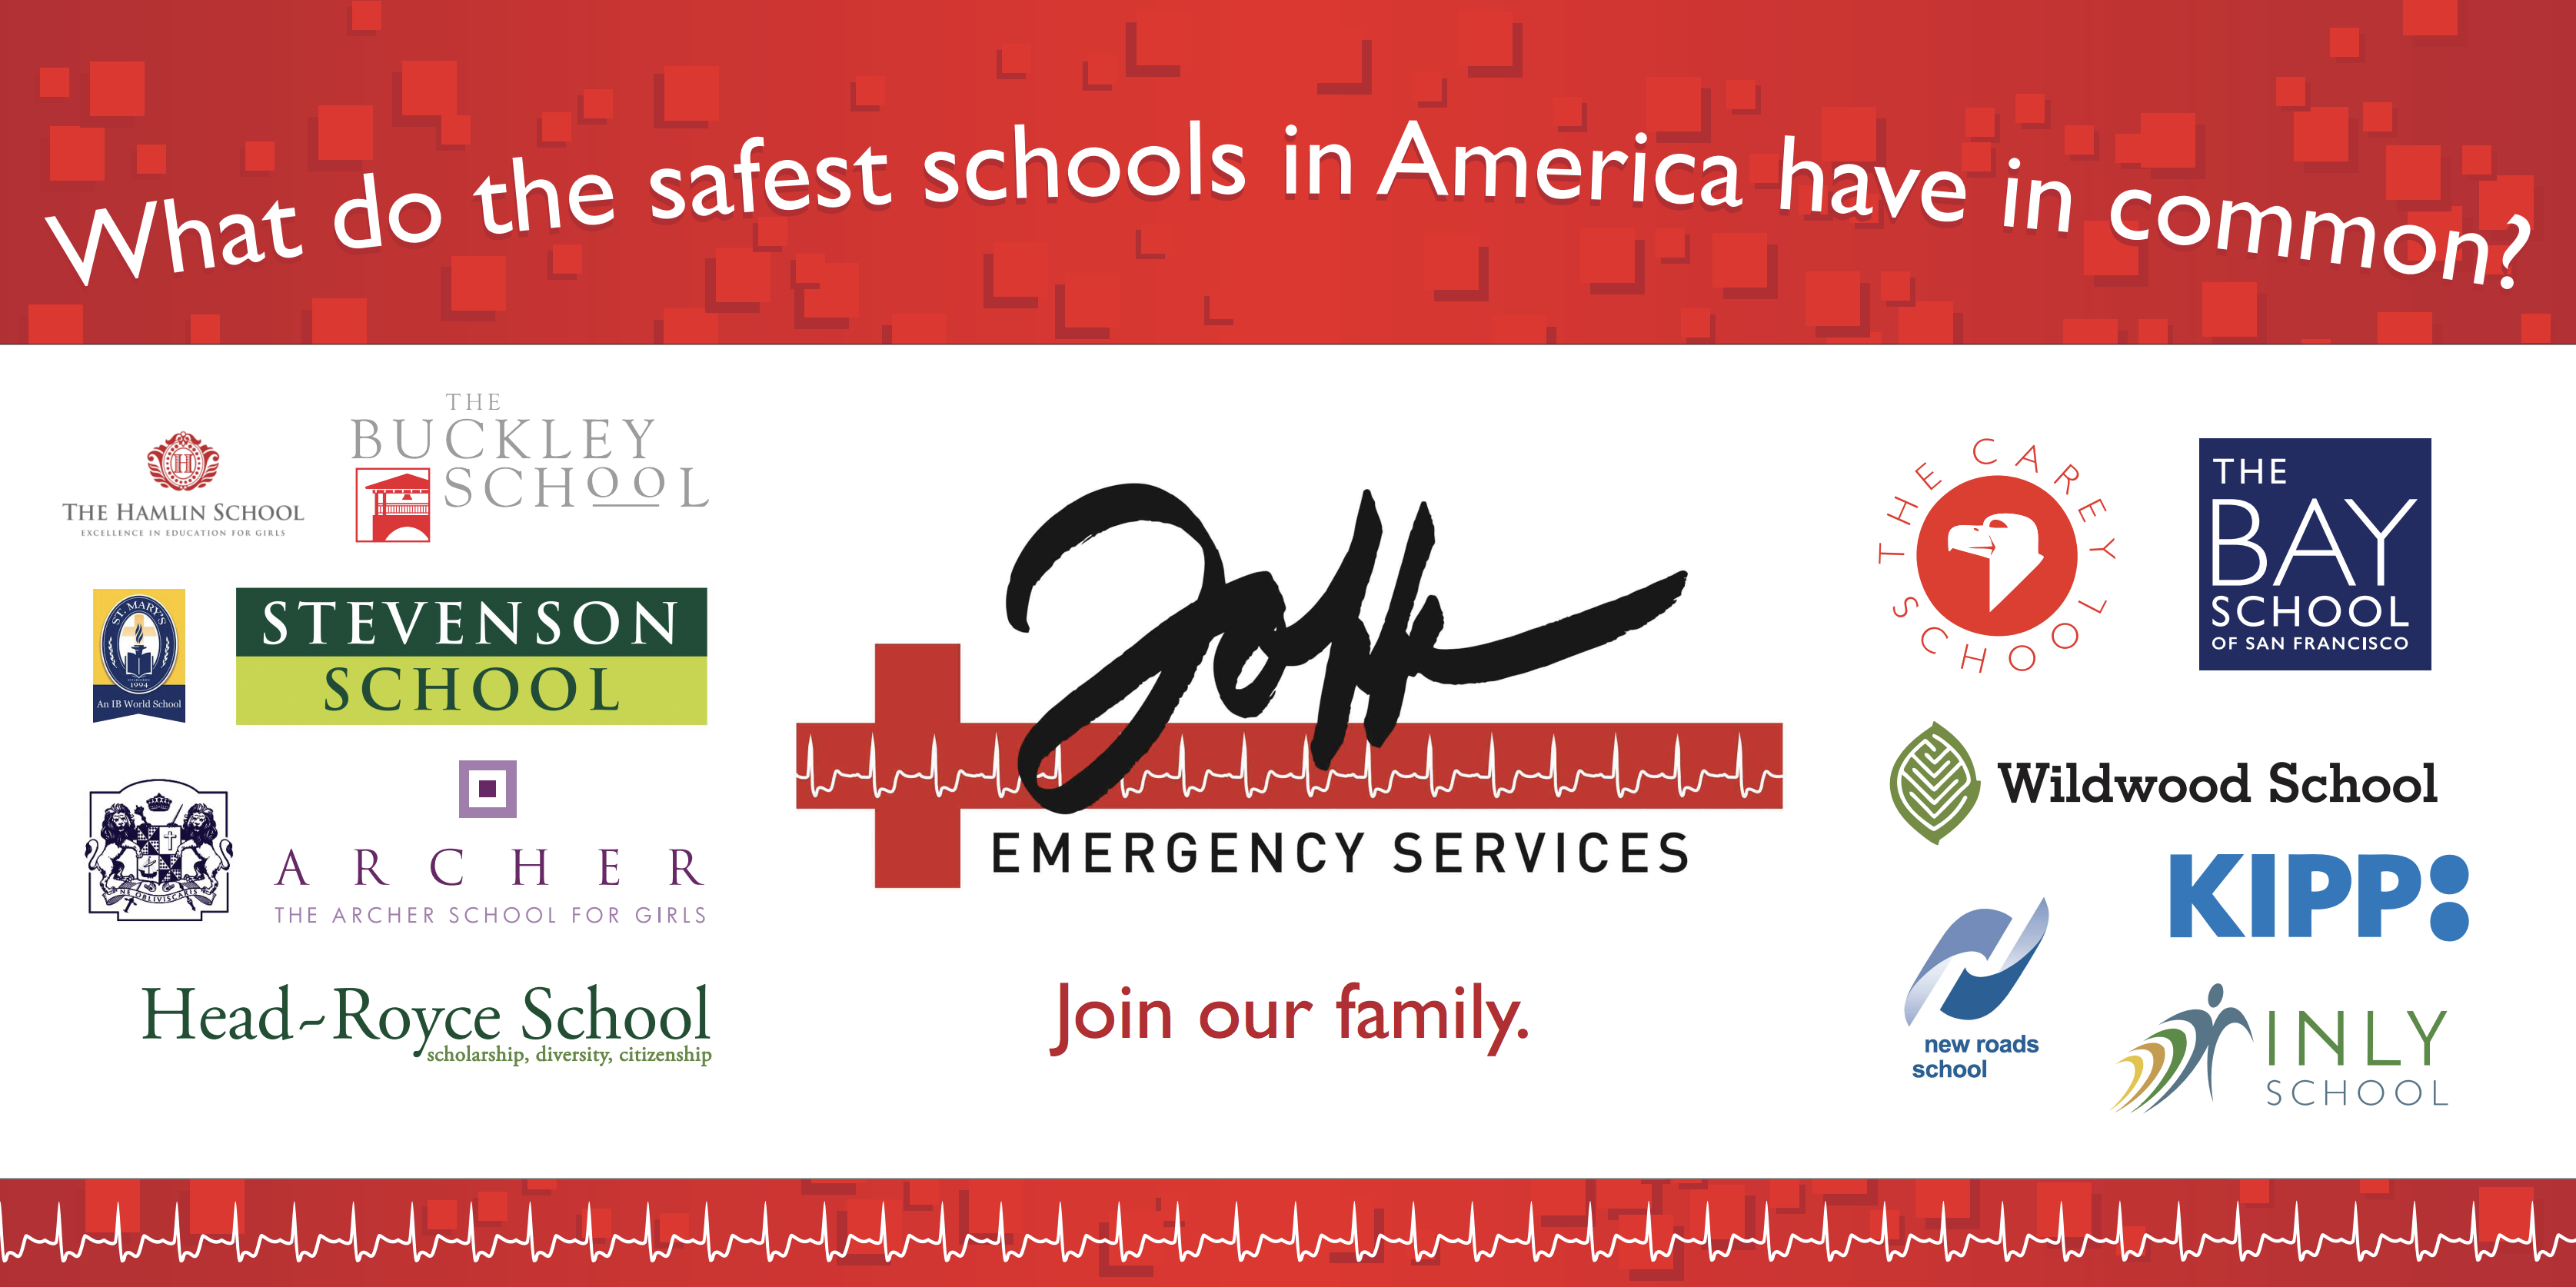 What do the safest schools in America have in common?